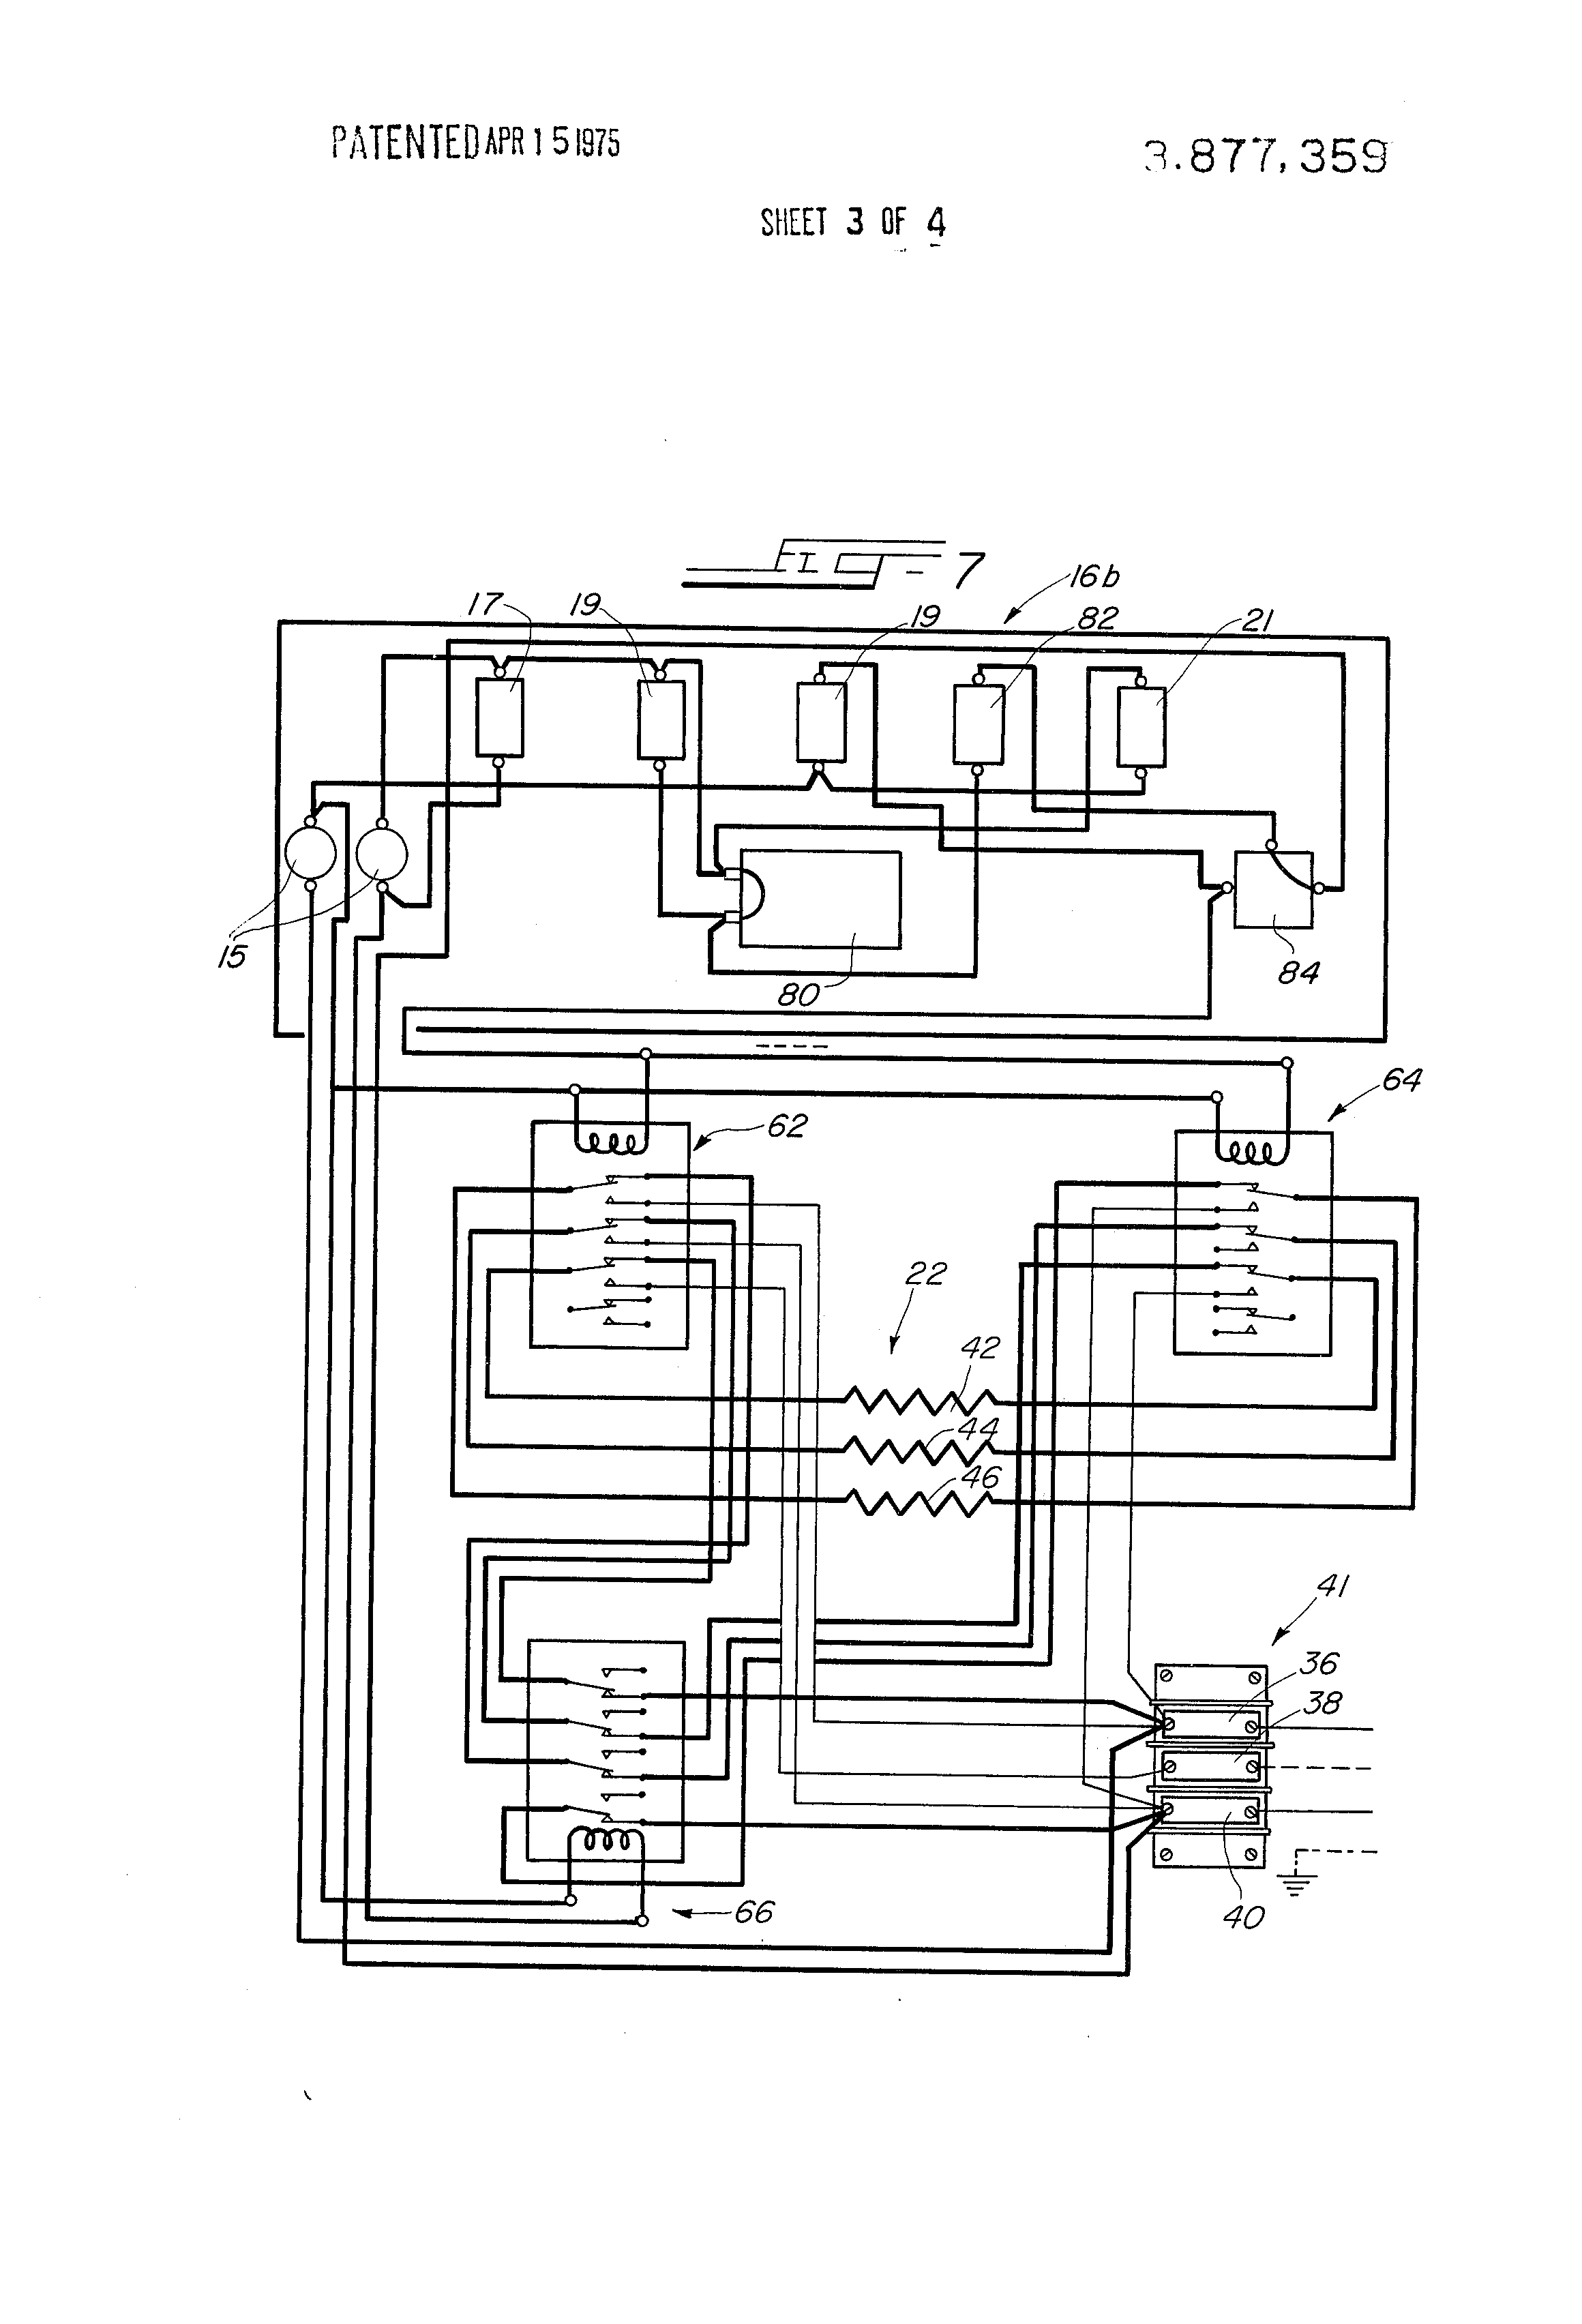 Patent Us3877359 - Electric Deep Fat Fryer With Controlled Heat During Start-up